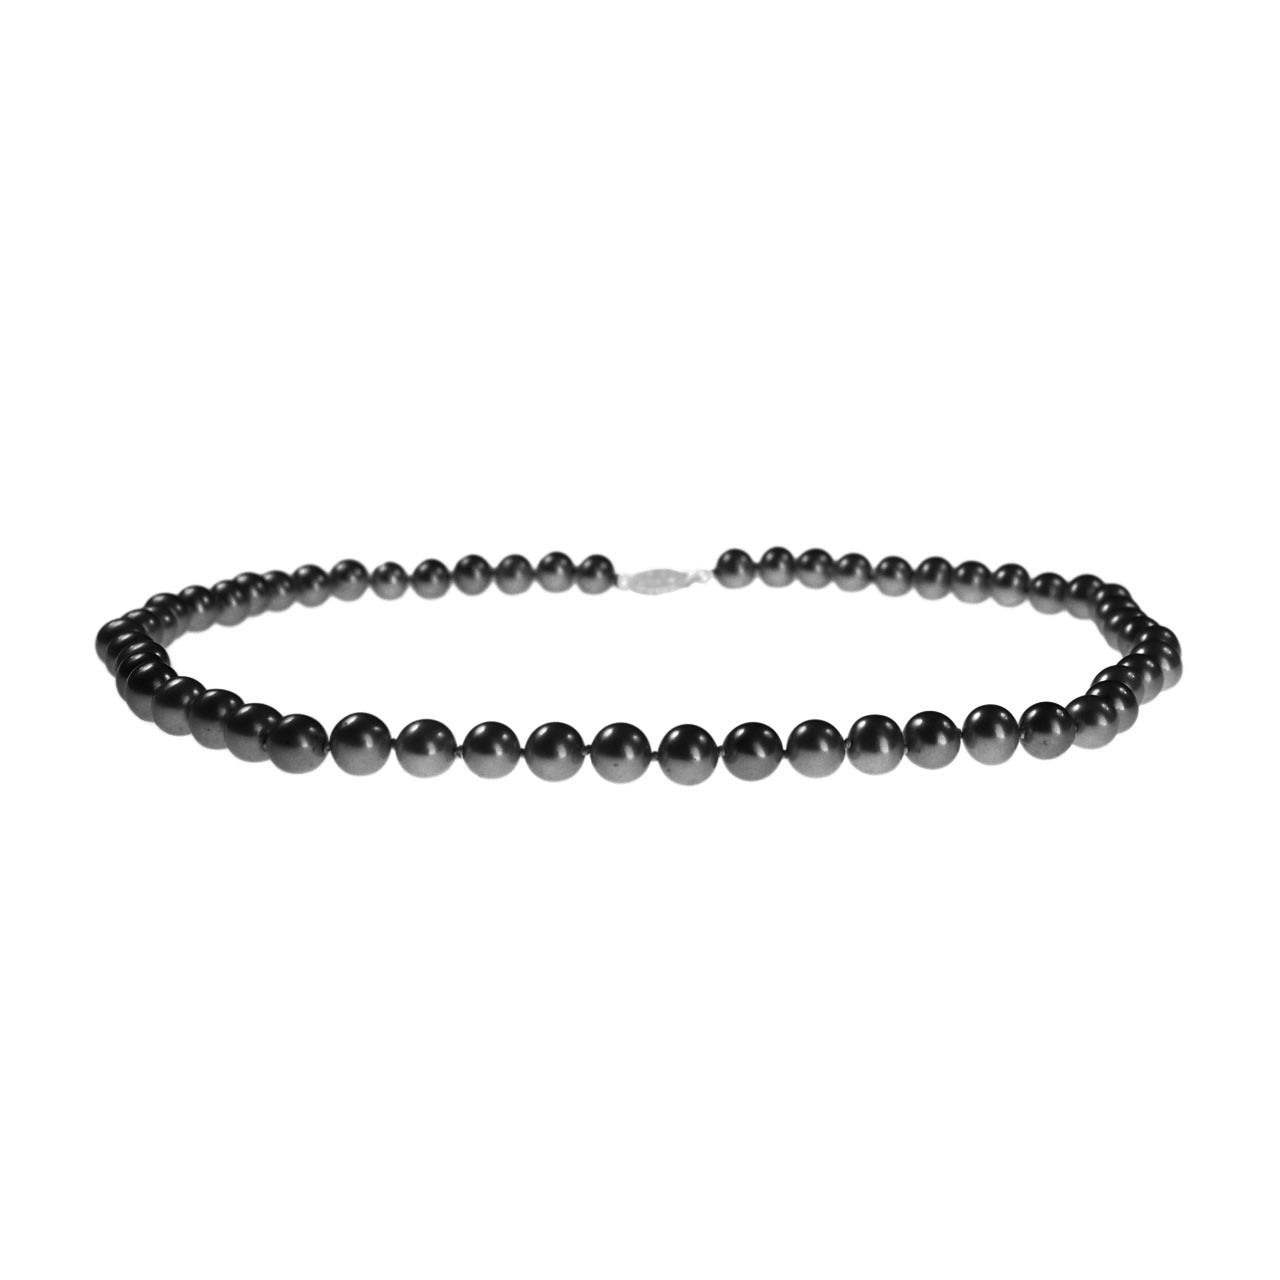 Black pearl necklace in New York and Toronto 1